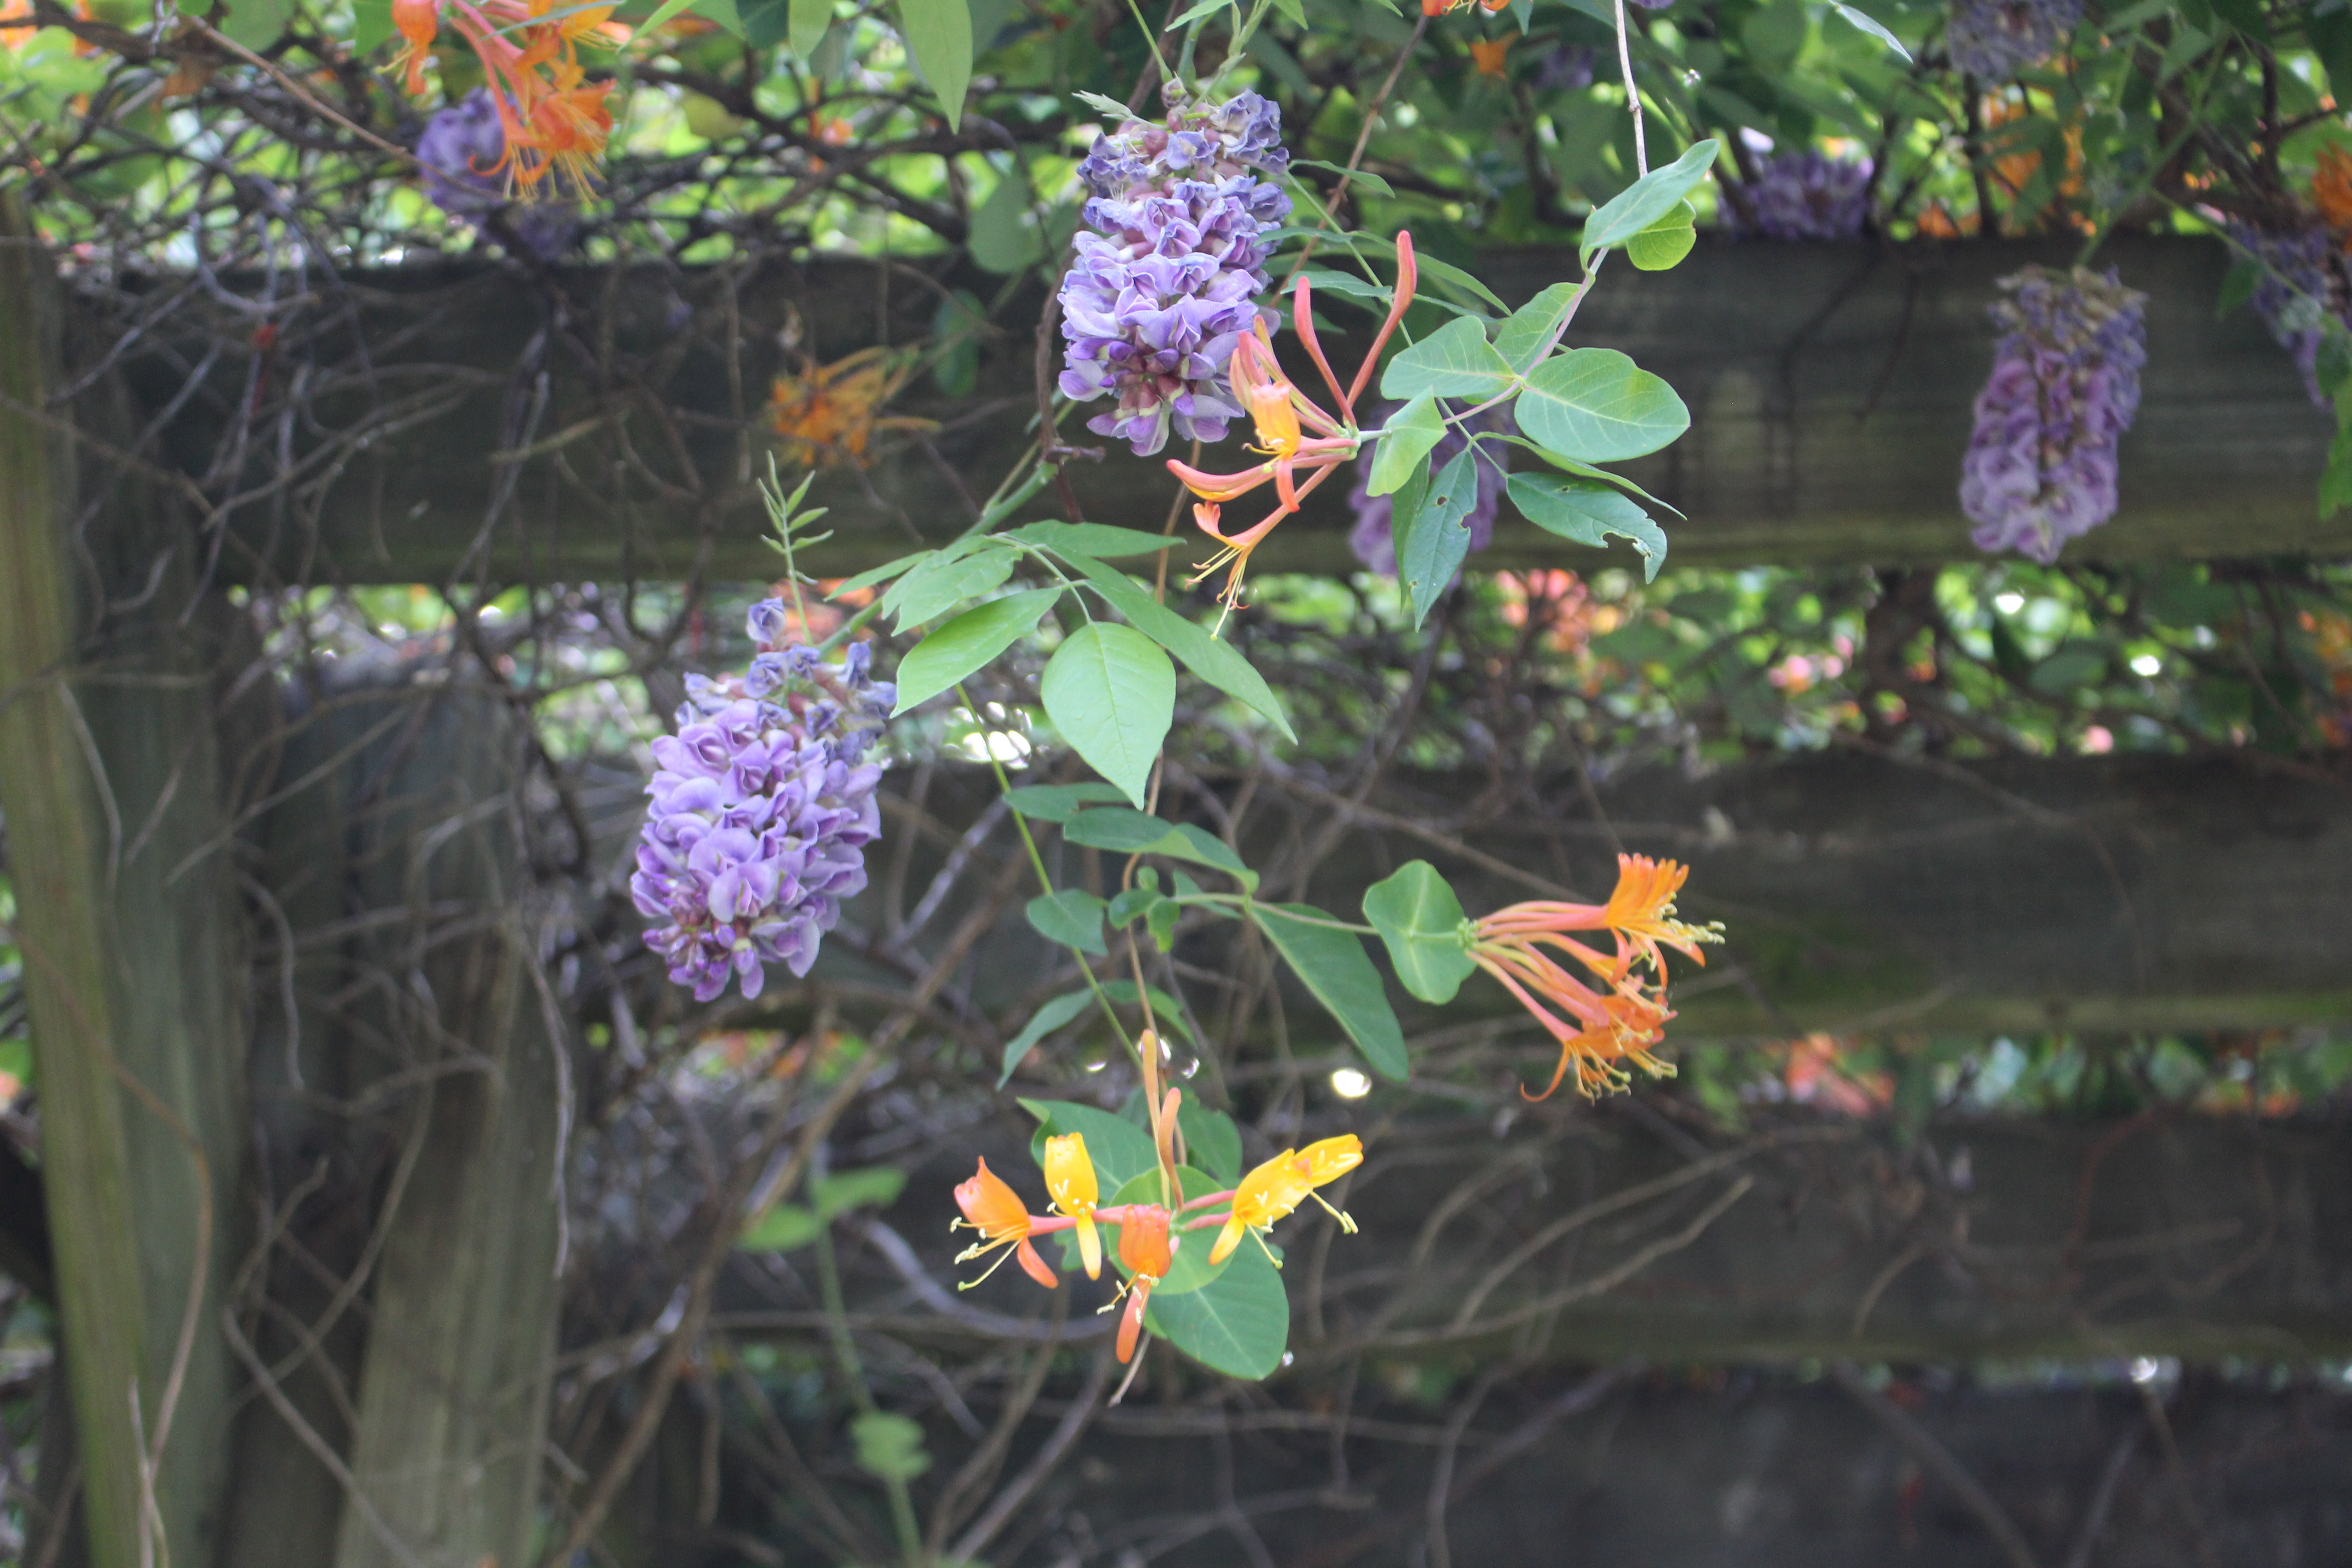 Wisteria and honeysuckle blooming